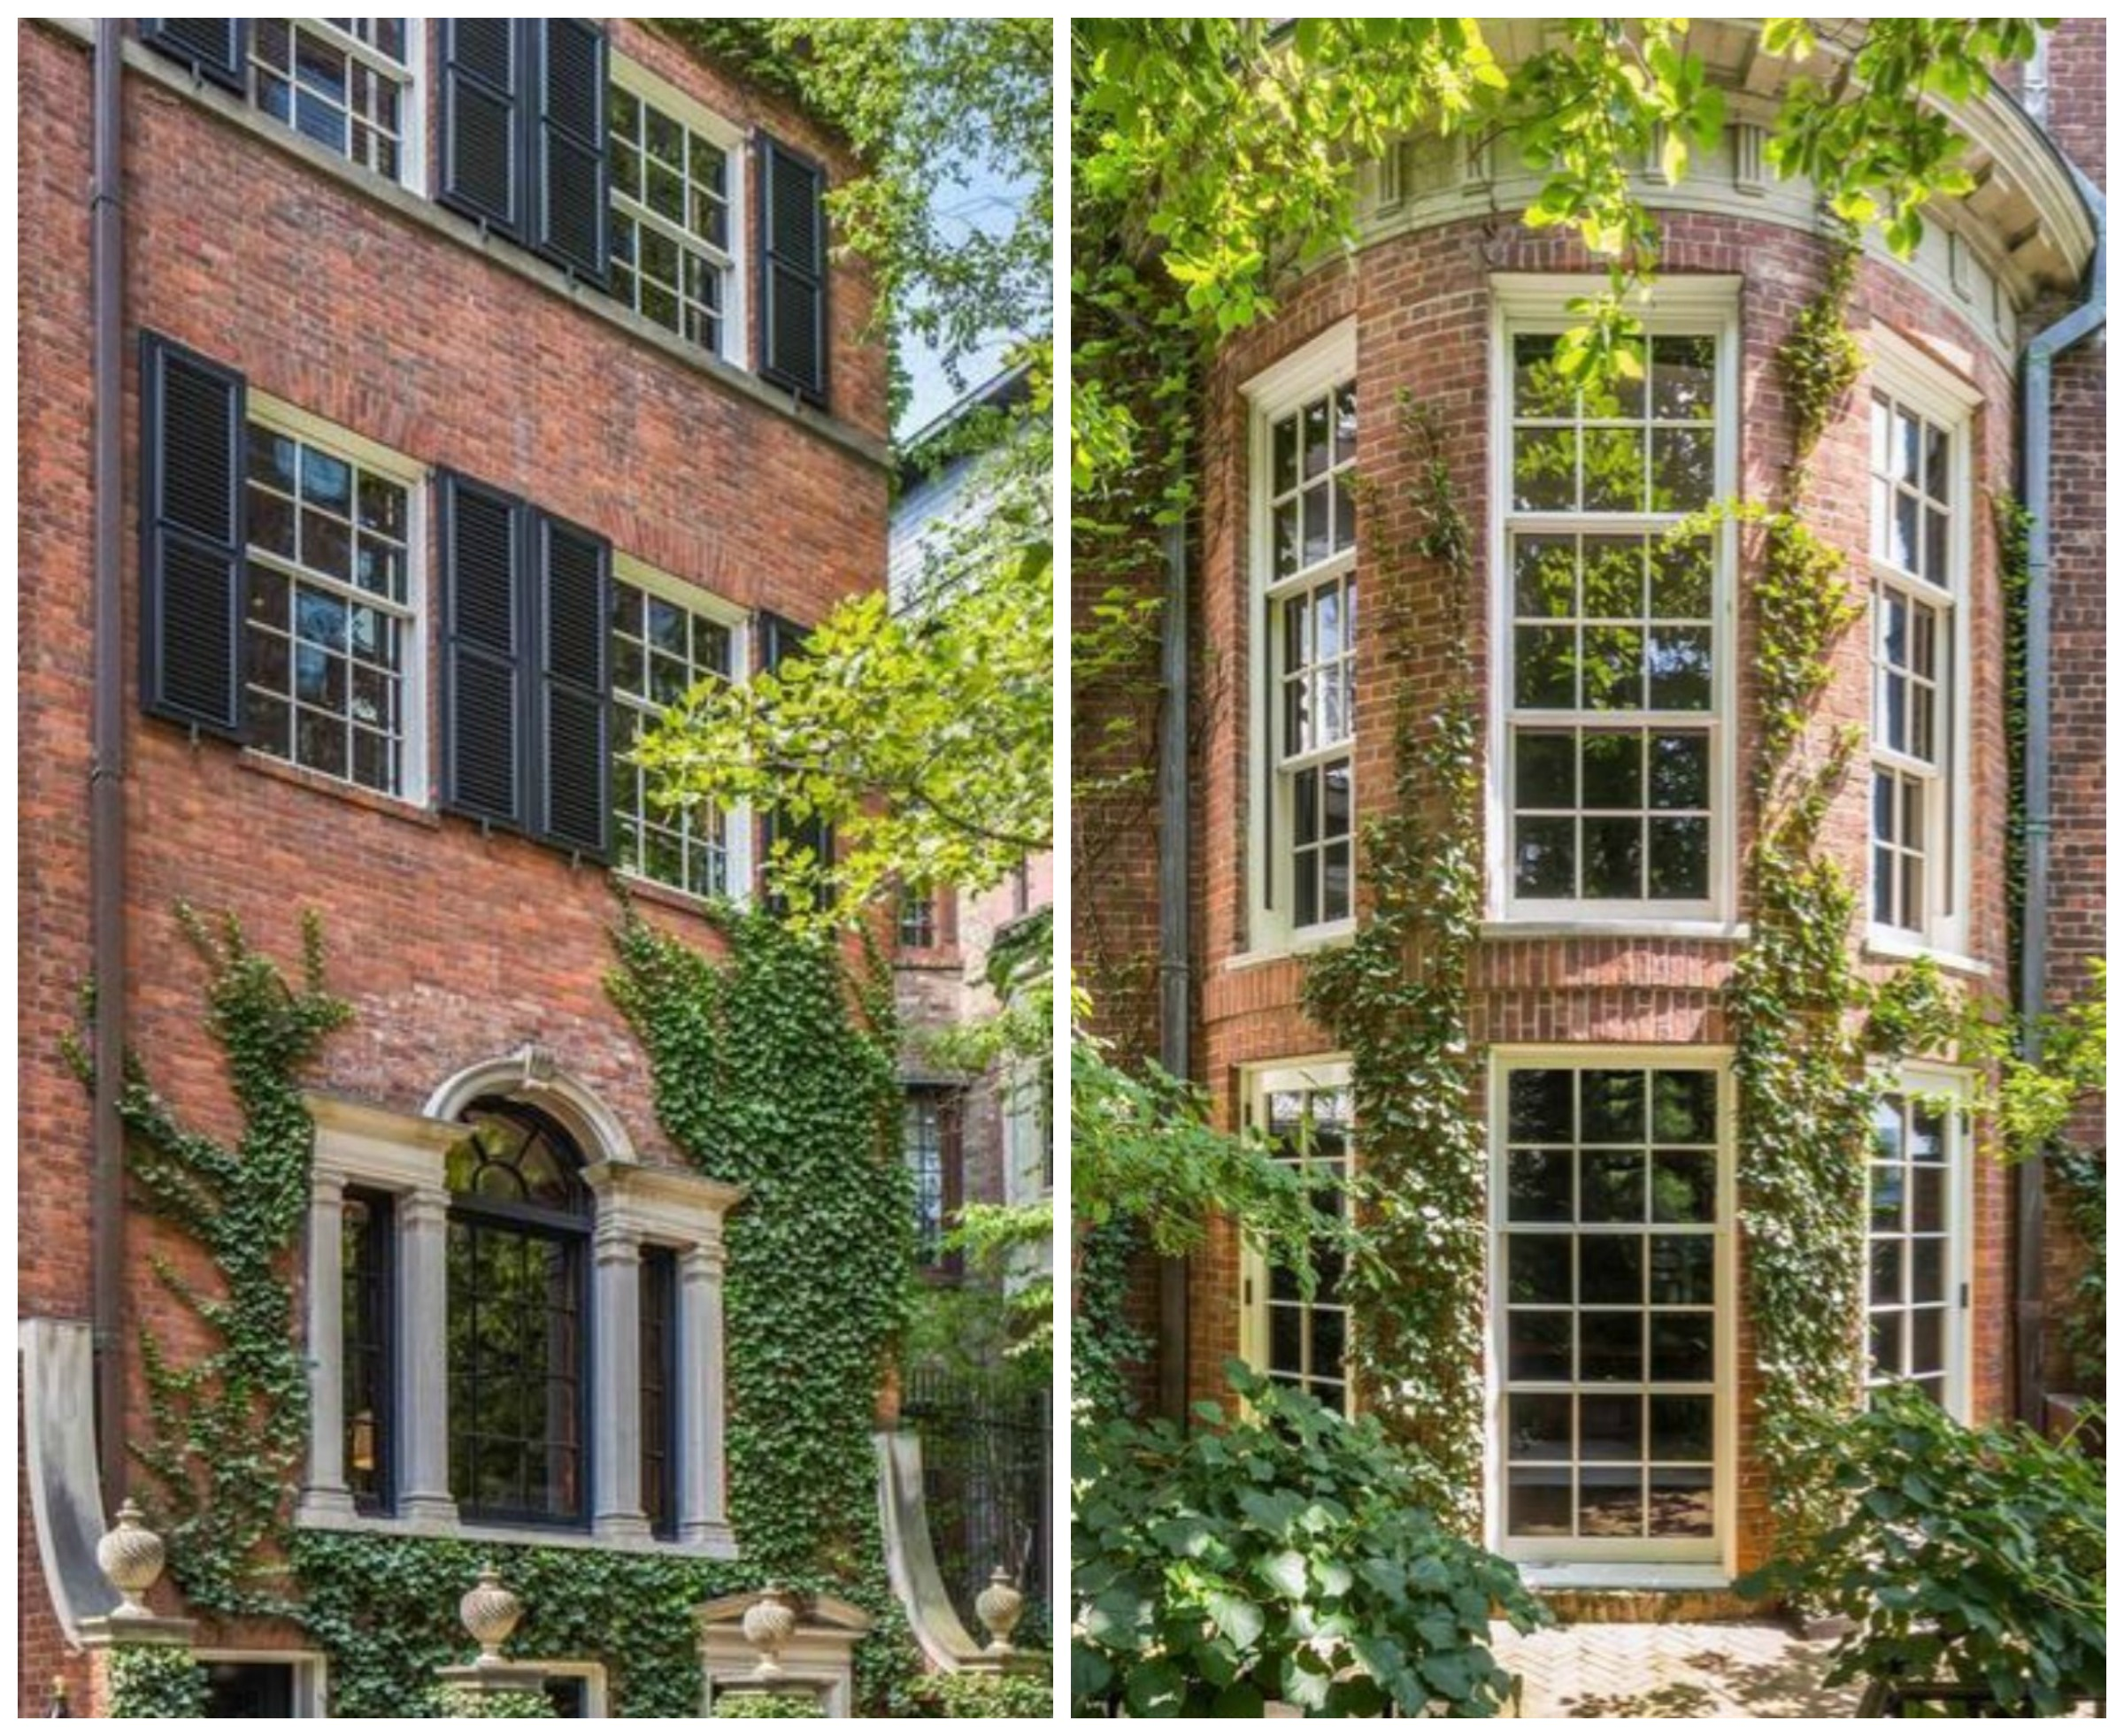 elizabeth arden s former sutton place townhouse hits the market